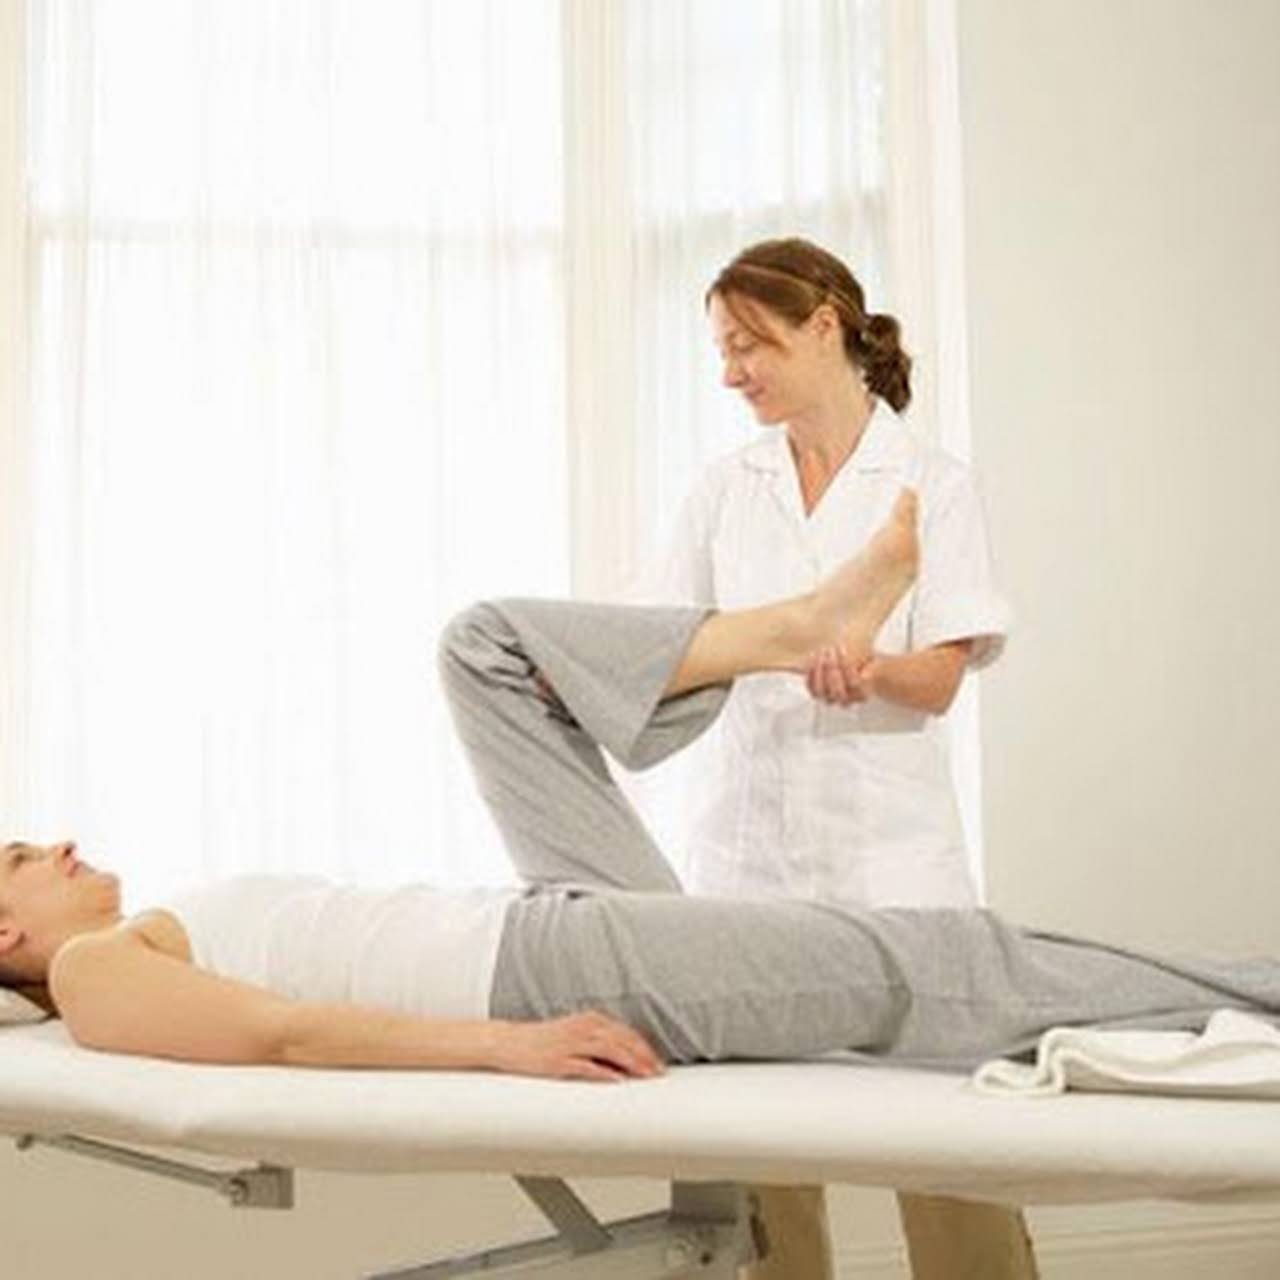 Scarborough Sports Massage Clinic - A Sports Massage clinic